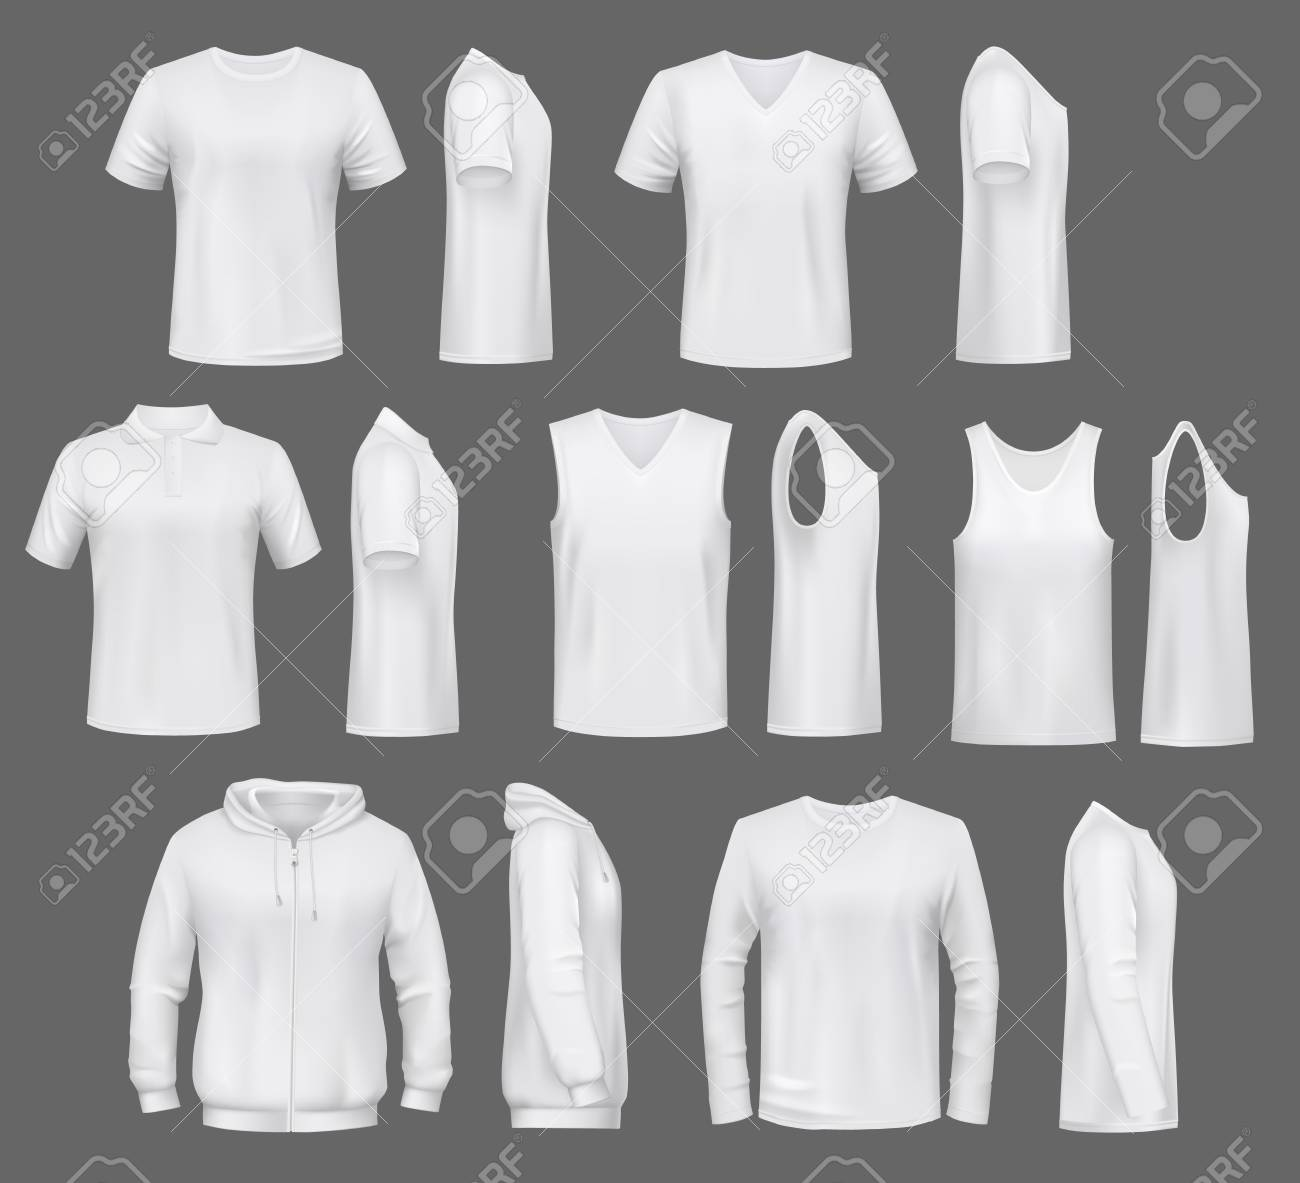 Male fashion, t-shirt templates with hoodie and sweatshirt, polo and singlet or sleeveless shirt. Vector basic clothes white mockups, casual garments. Men outfit henleys and tank top items, underwear - 124610210